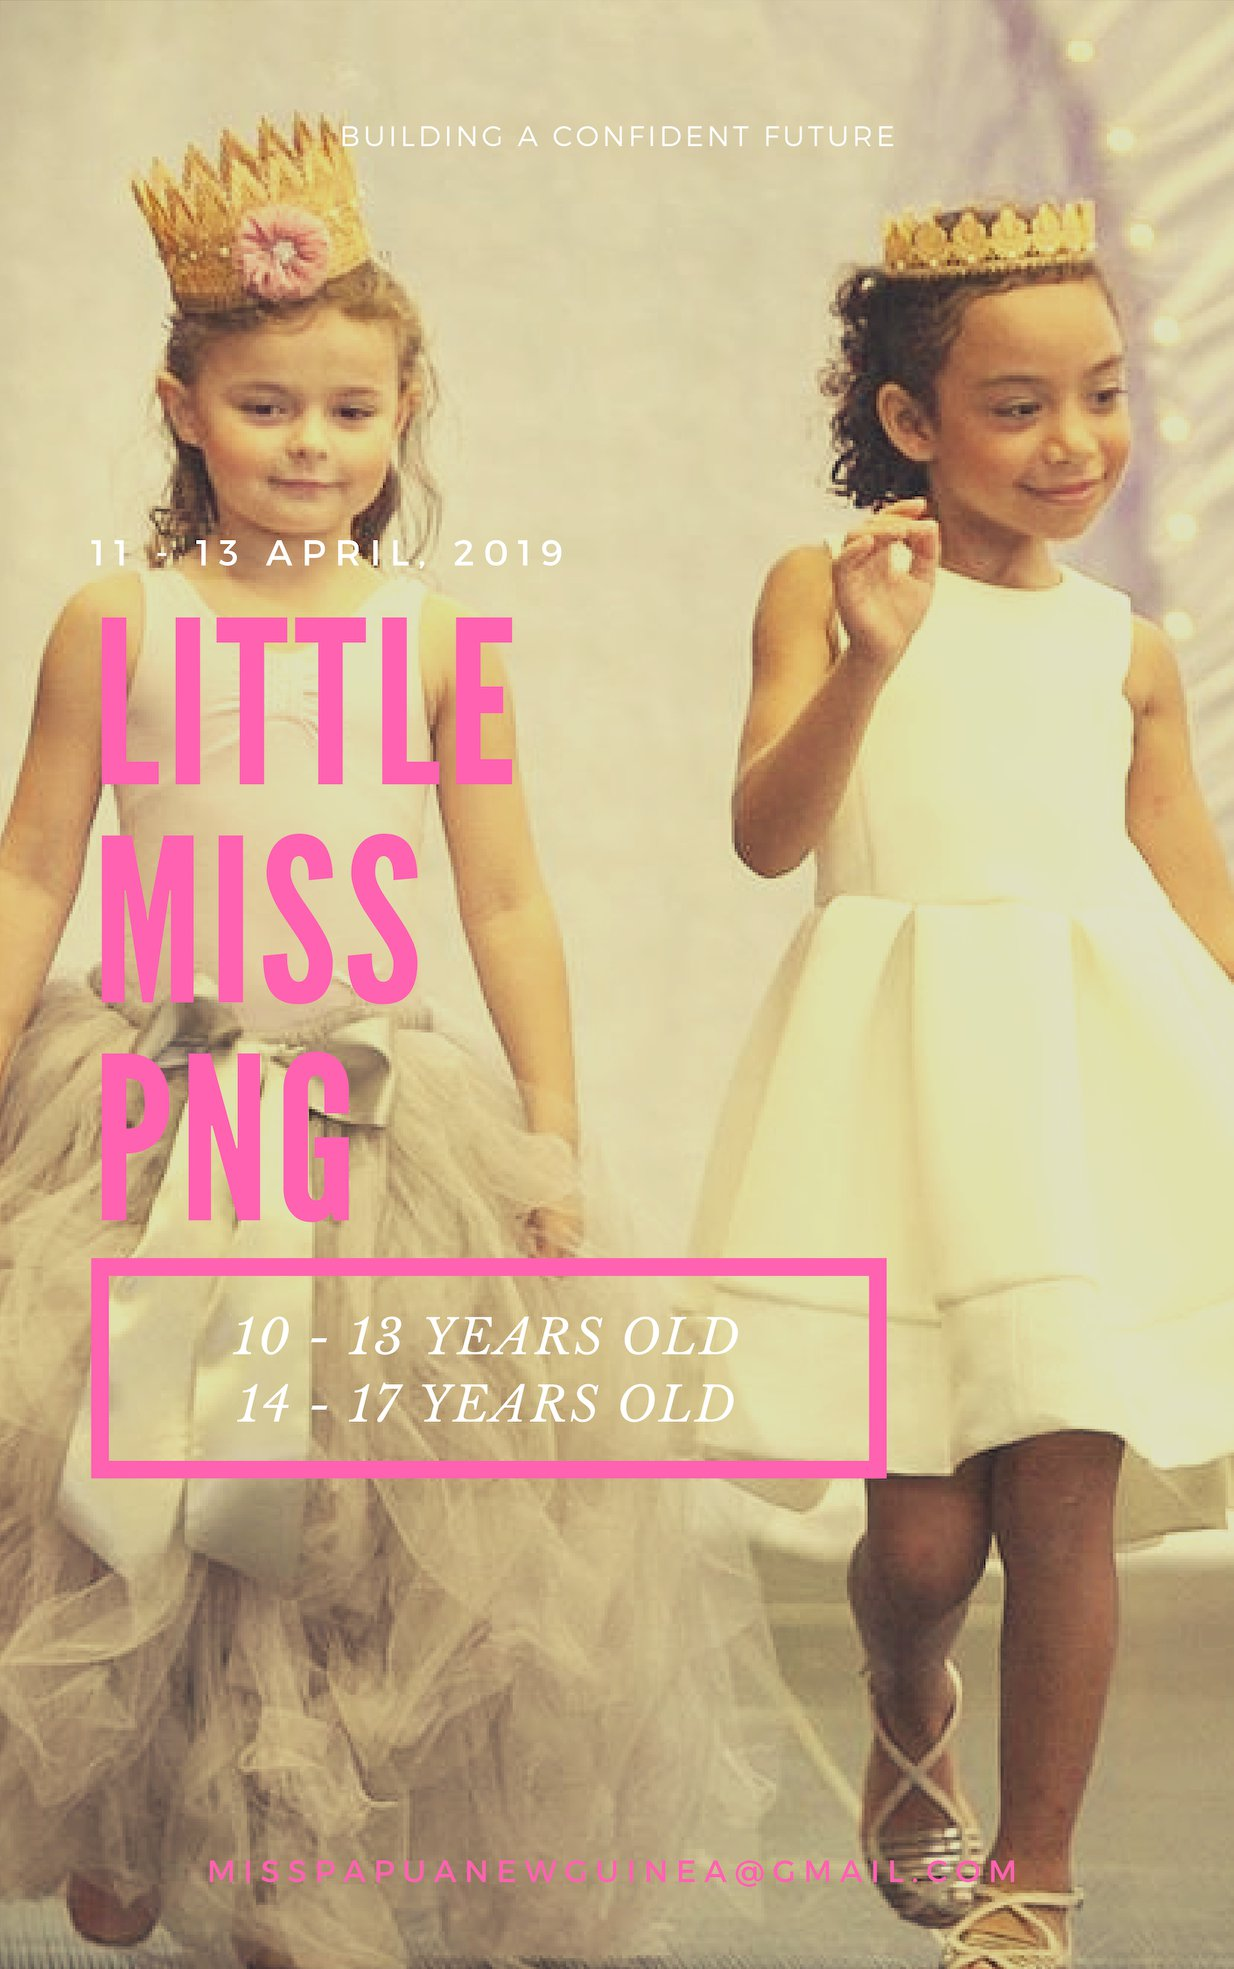 Little Miss PNG